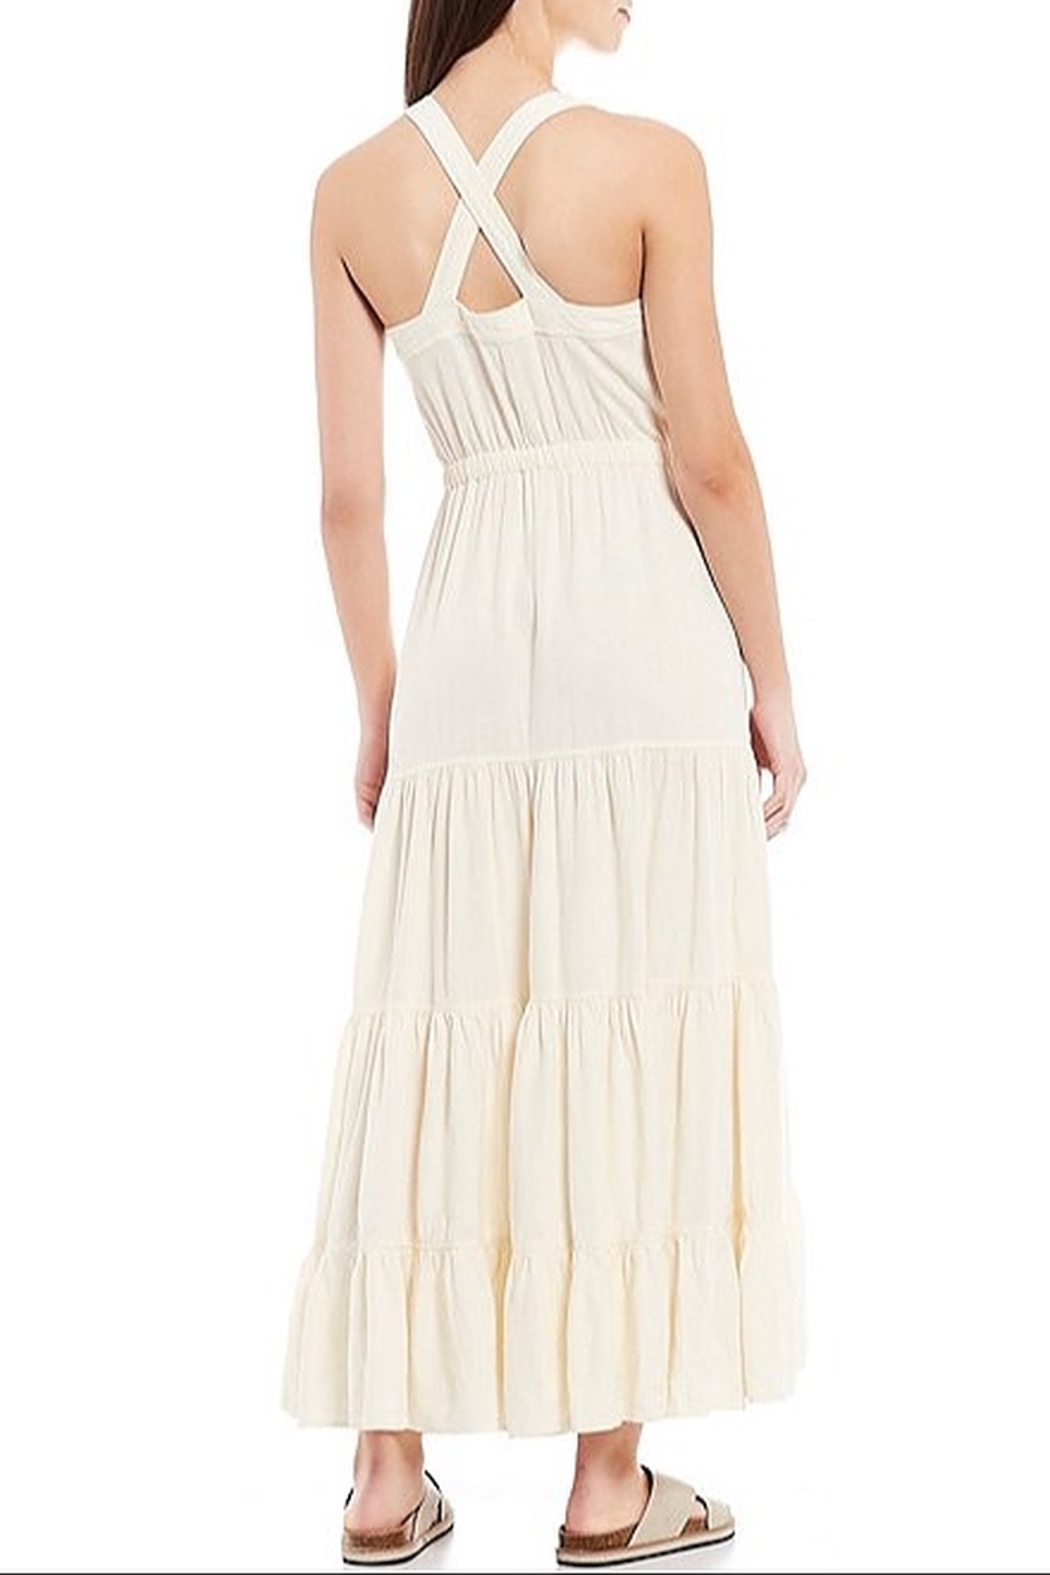 Free People Catch The Breeze Midi Dress - Front Full Image